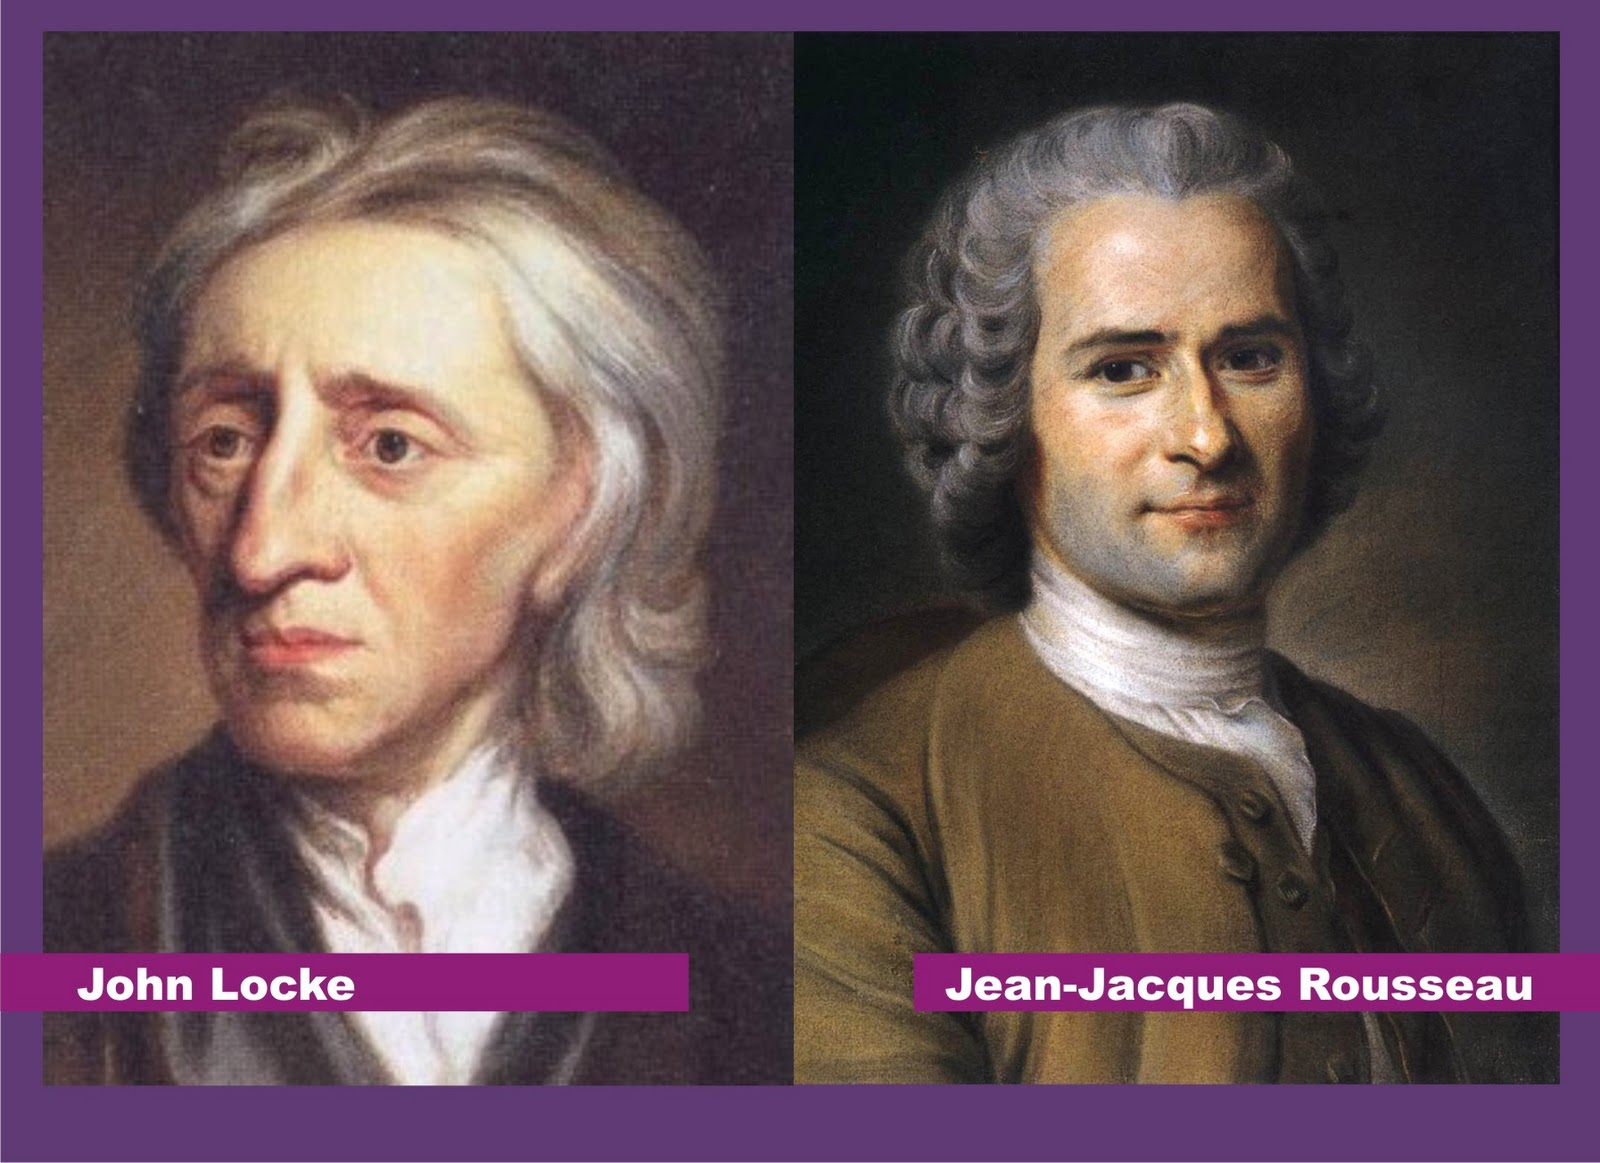 an introduction to the comparison of jean jacques rousseau and thomas hobbes View essay - how do the social contract theories of hobbes jean jacques rousseau (author) the social contract thomas hobbes john locke (philosopher) hobbes, locke and rousseau comparison grid university of geneva.